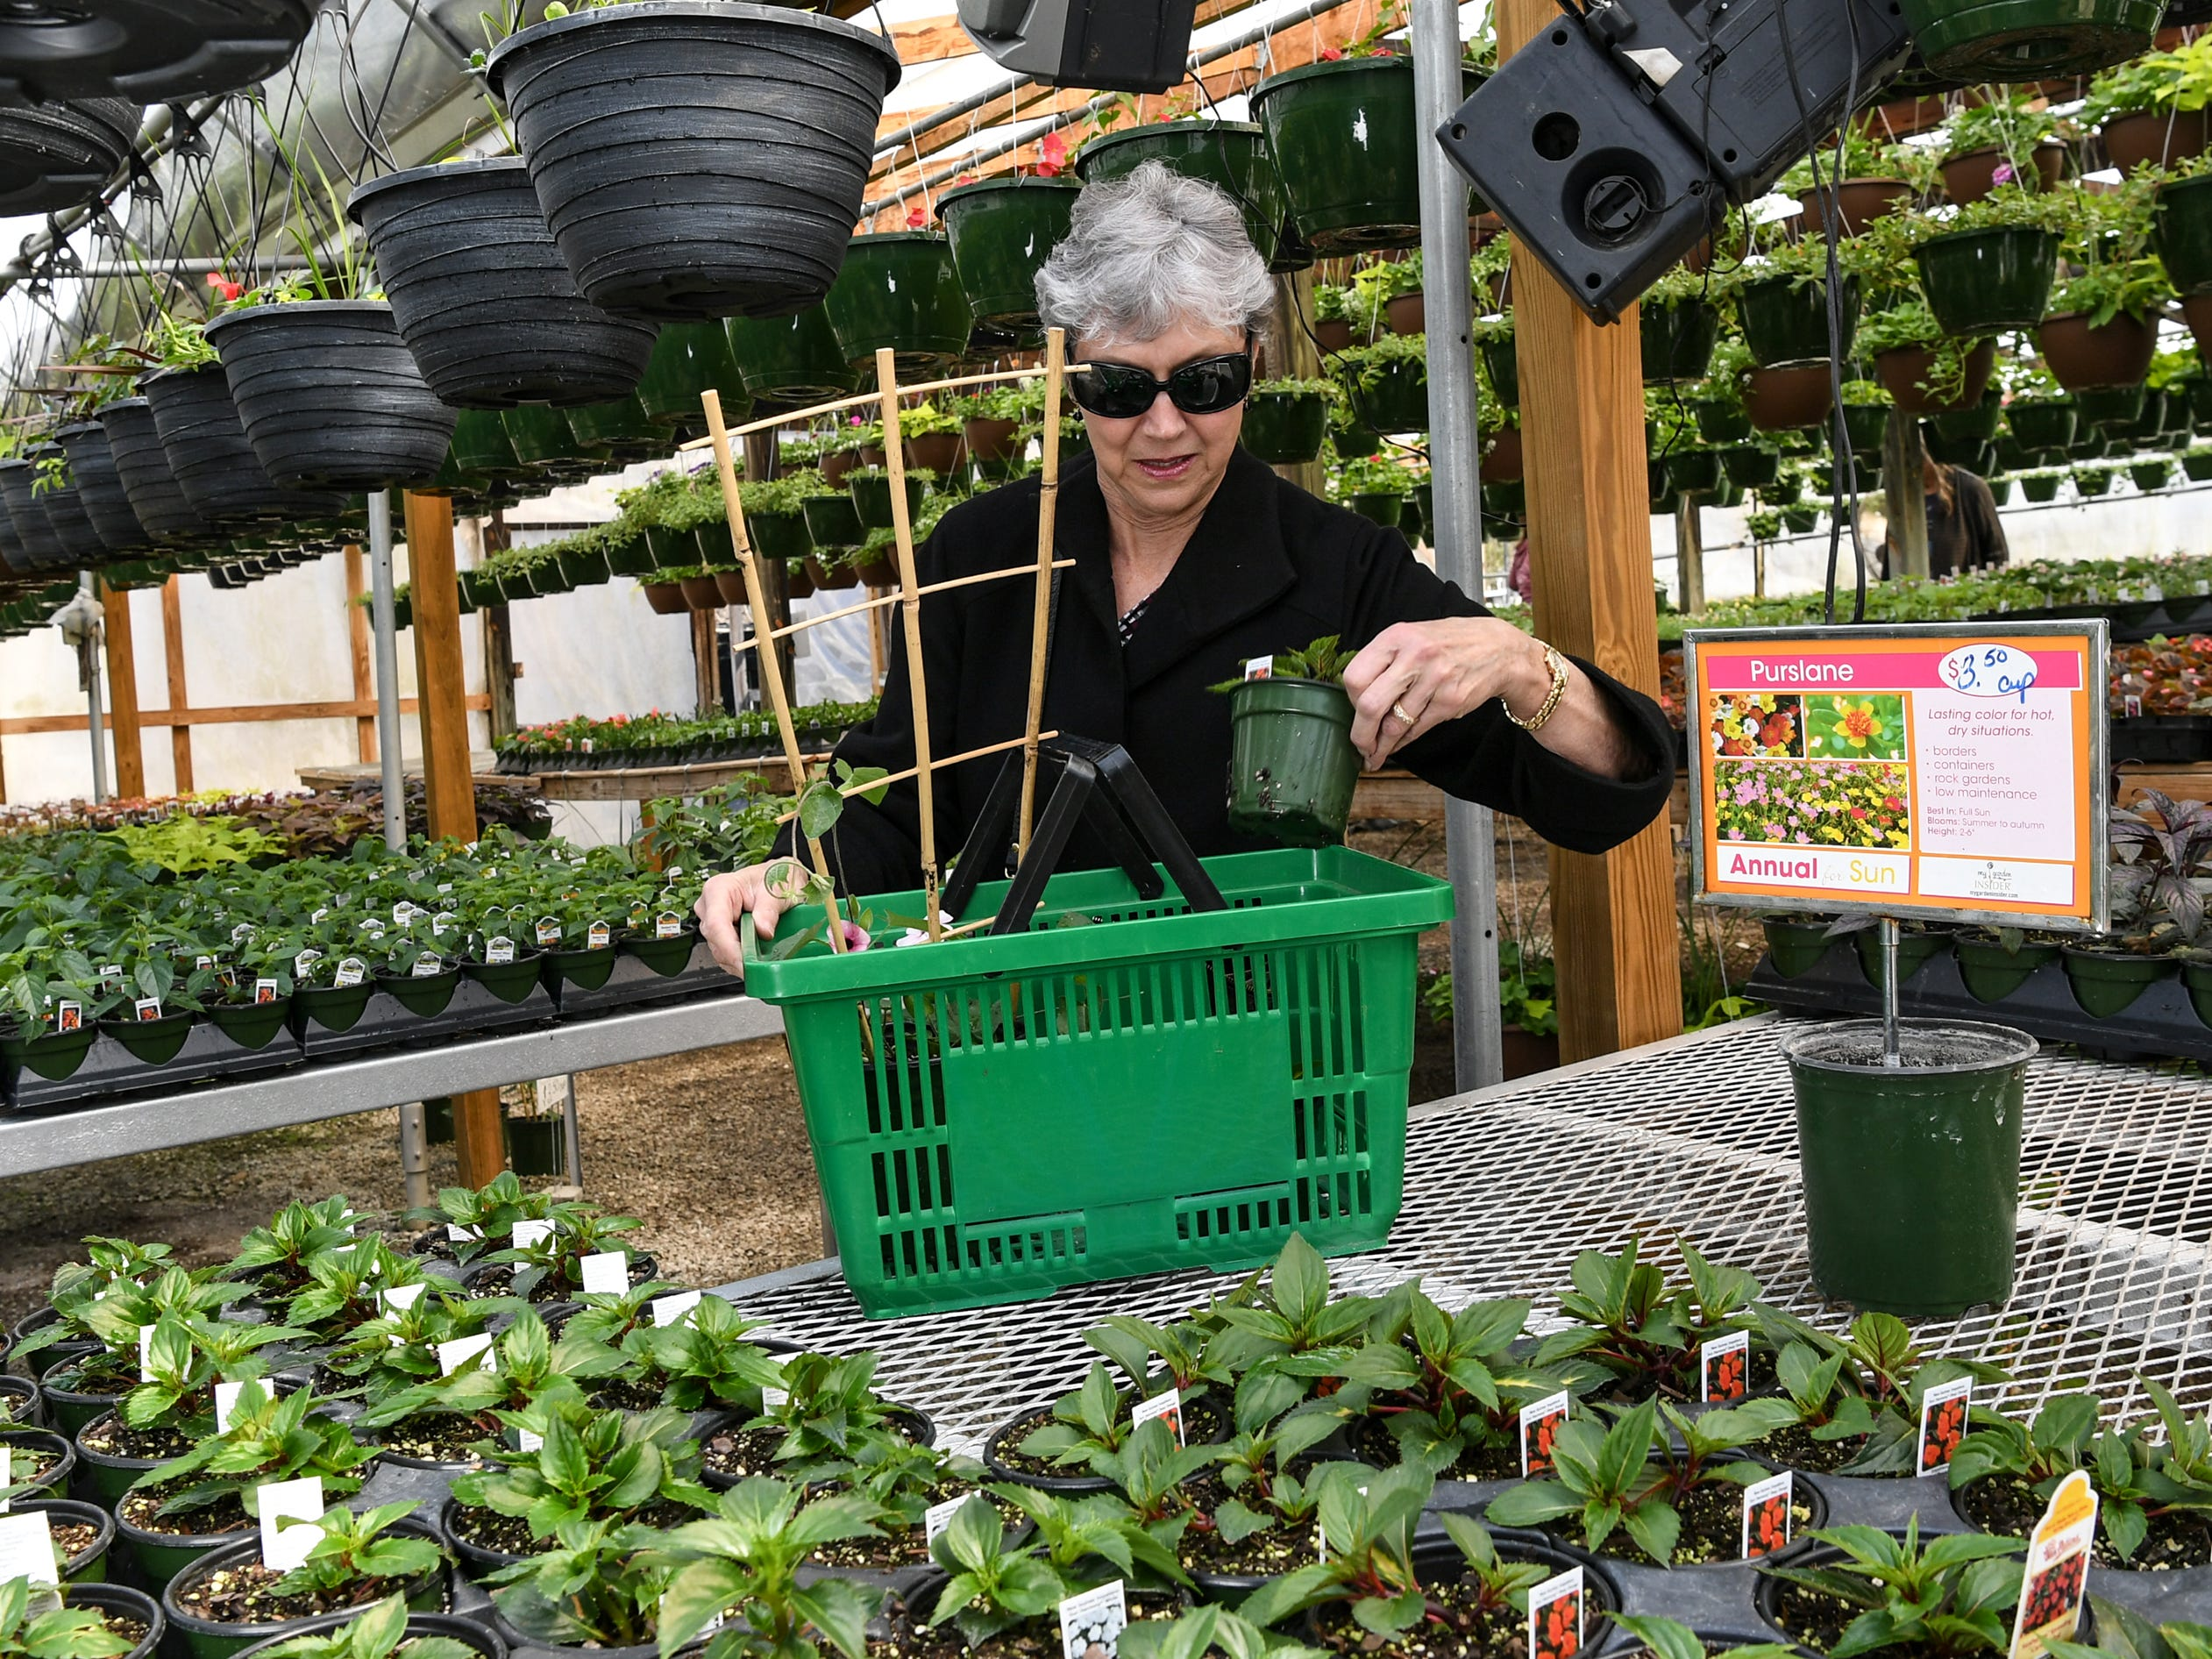 Julie Schattyn of Anderson picks up a few plants at McAlister Greenhouses in the Homeland Park community of Anderson during the first day of spring Wednesday.